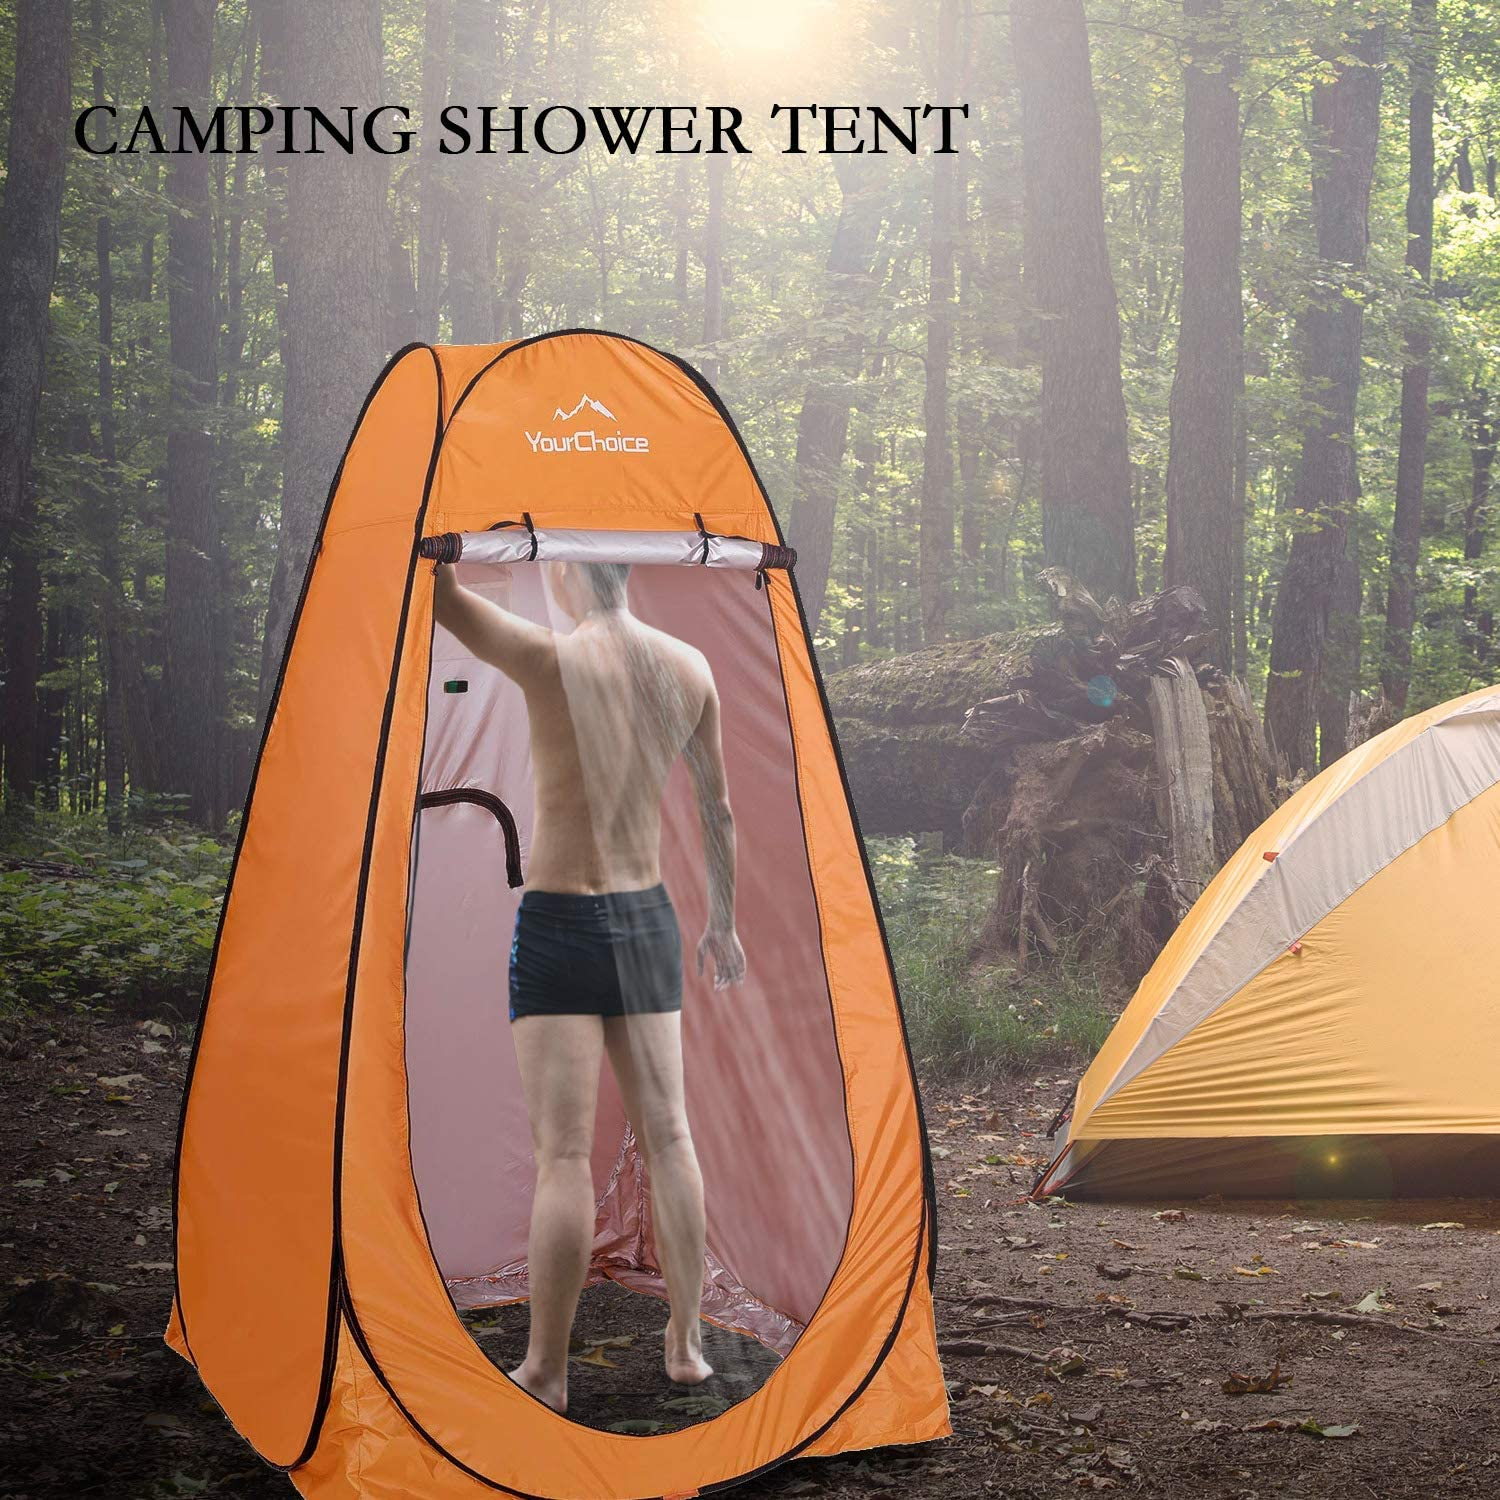 Your Choice Pop Up Camping Shower Tent, Portable Changing Room Camp Shower Toilet Privacy shelter Tents for Outdoor and Indoor, 6.2FT Tall - Color Orange: Sports & Outdoors